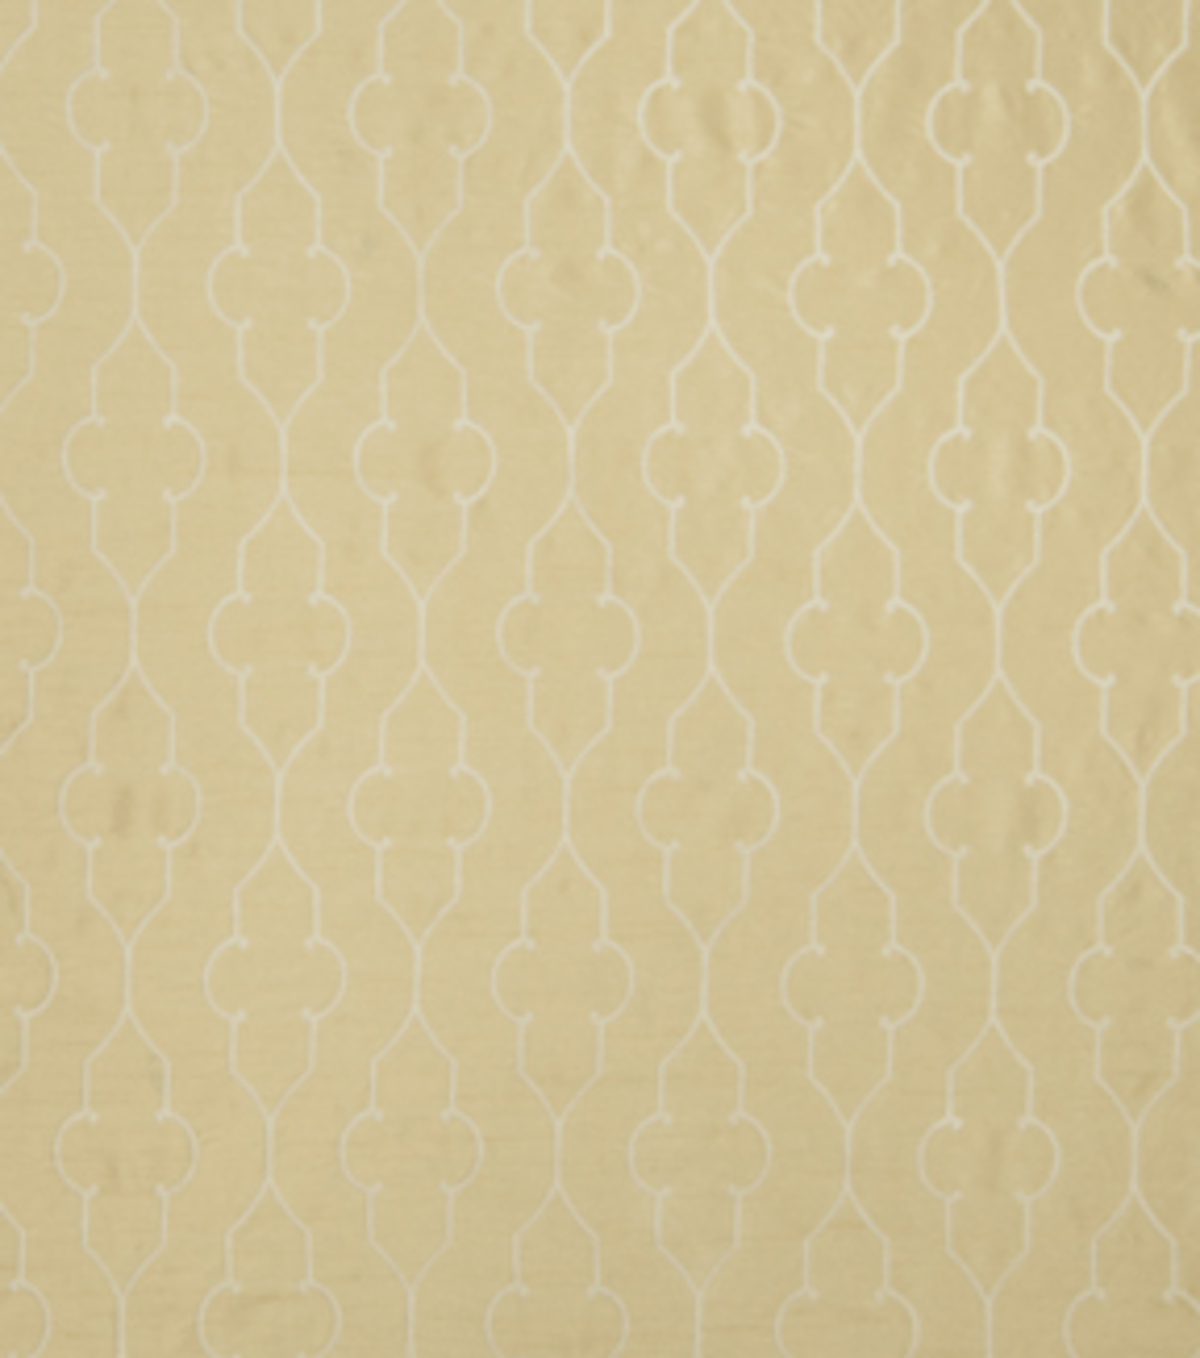 Home Decor 8\u0022x8\u0022 Fabric Swatch-Eaton Square Crane Buttercream